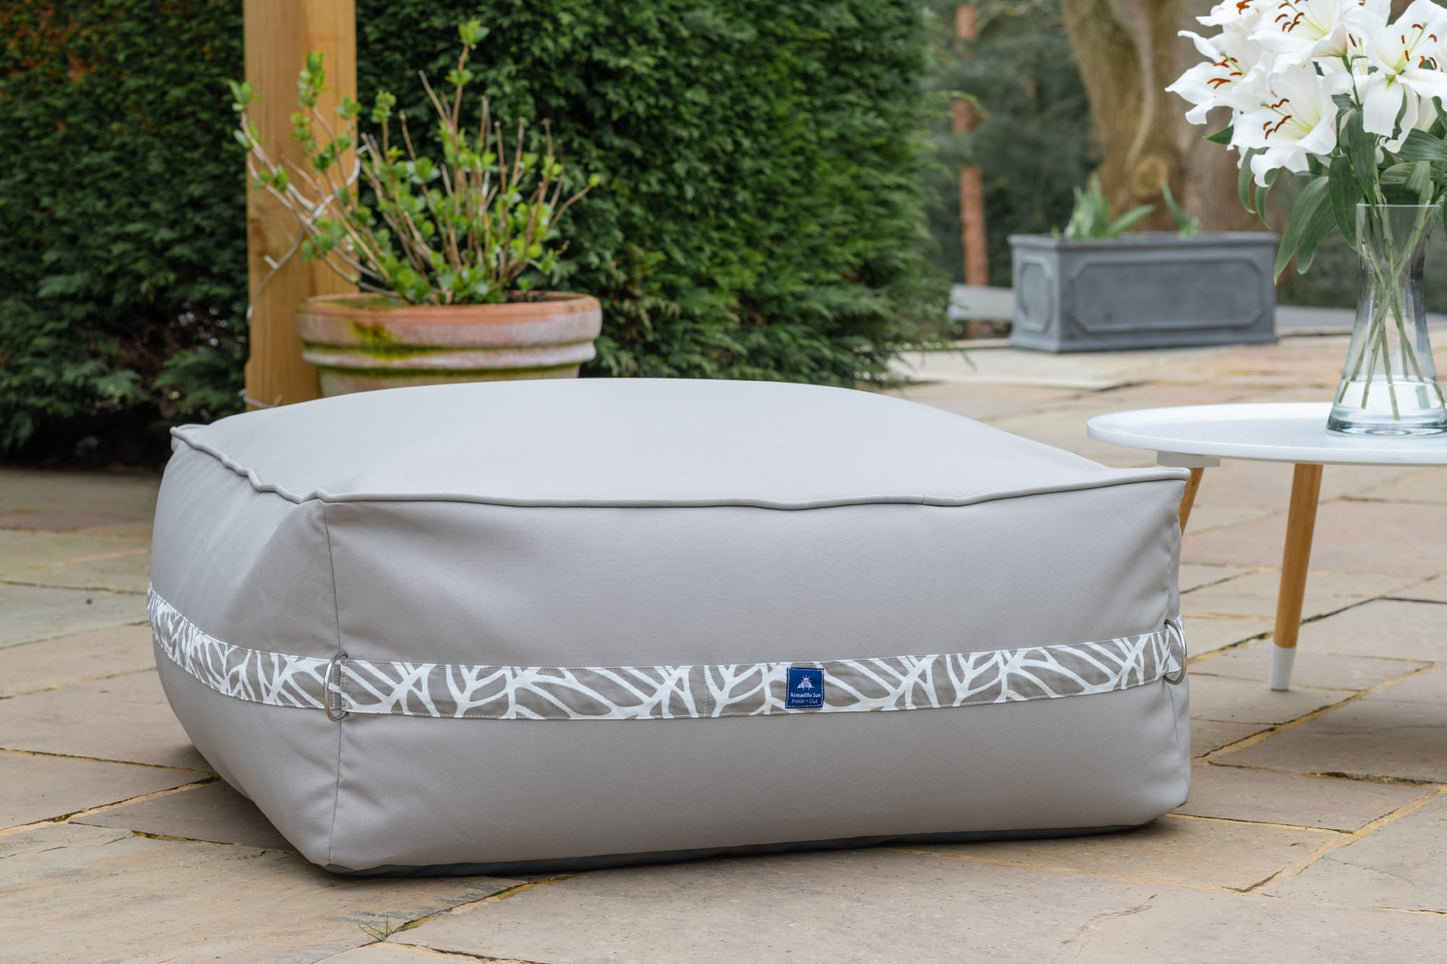 Monaco Modular Bean Bag Ottoman in Pumice with Palm Patterned Straps Monaco armadillosun